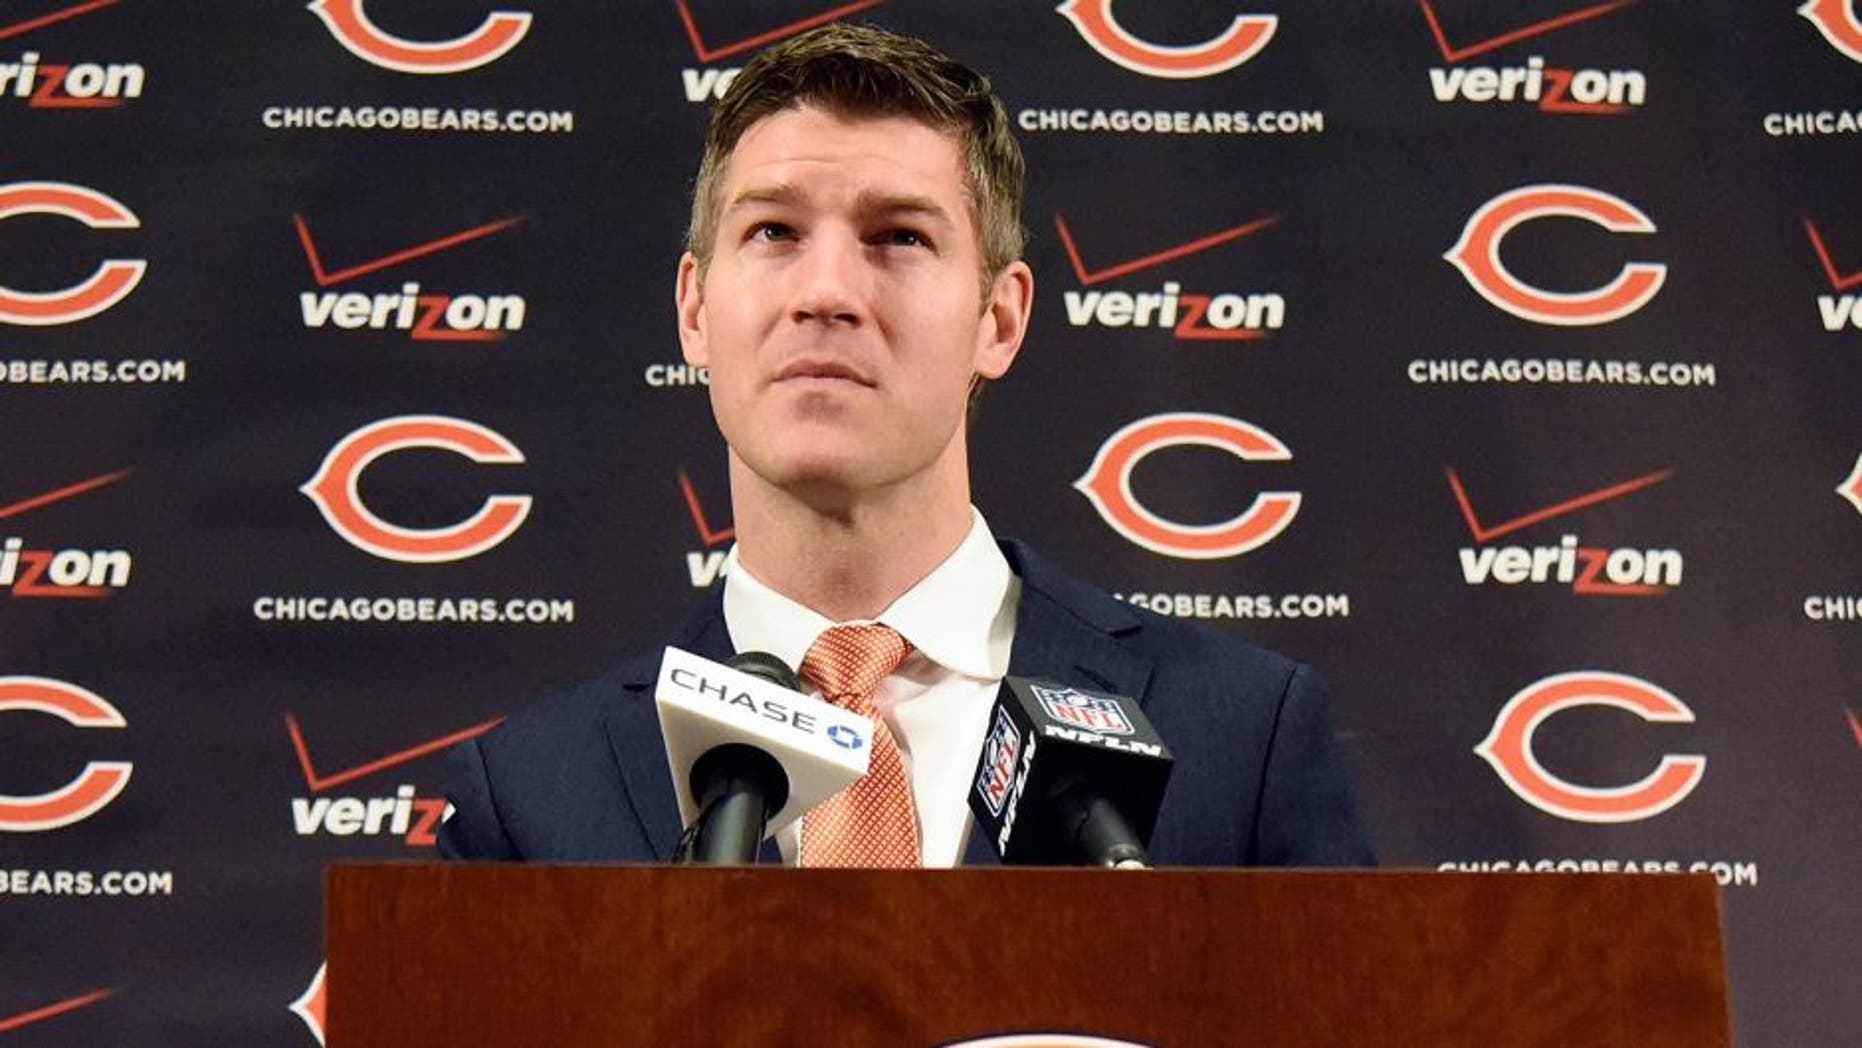 CHICAGO, IL- JANUARY 19: Chicago Bears general manager Ryan Pace introduces new head coach John Fox on January 19, 2015 at Halas Hall in Lake Forest, Illinois. (Photo by David Banks/Getty Images)